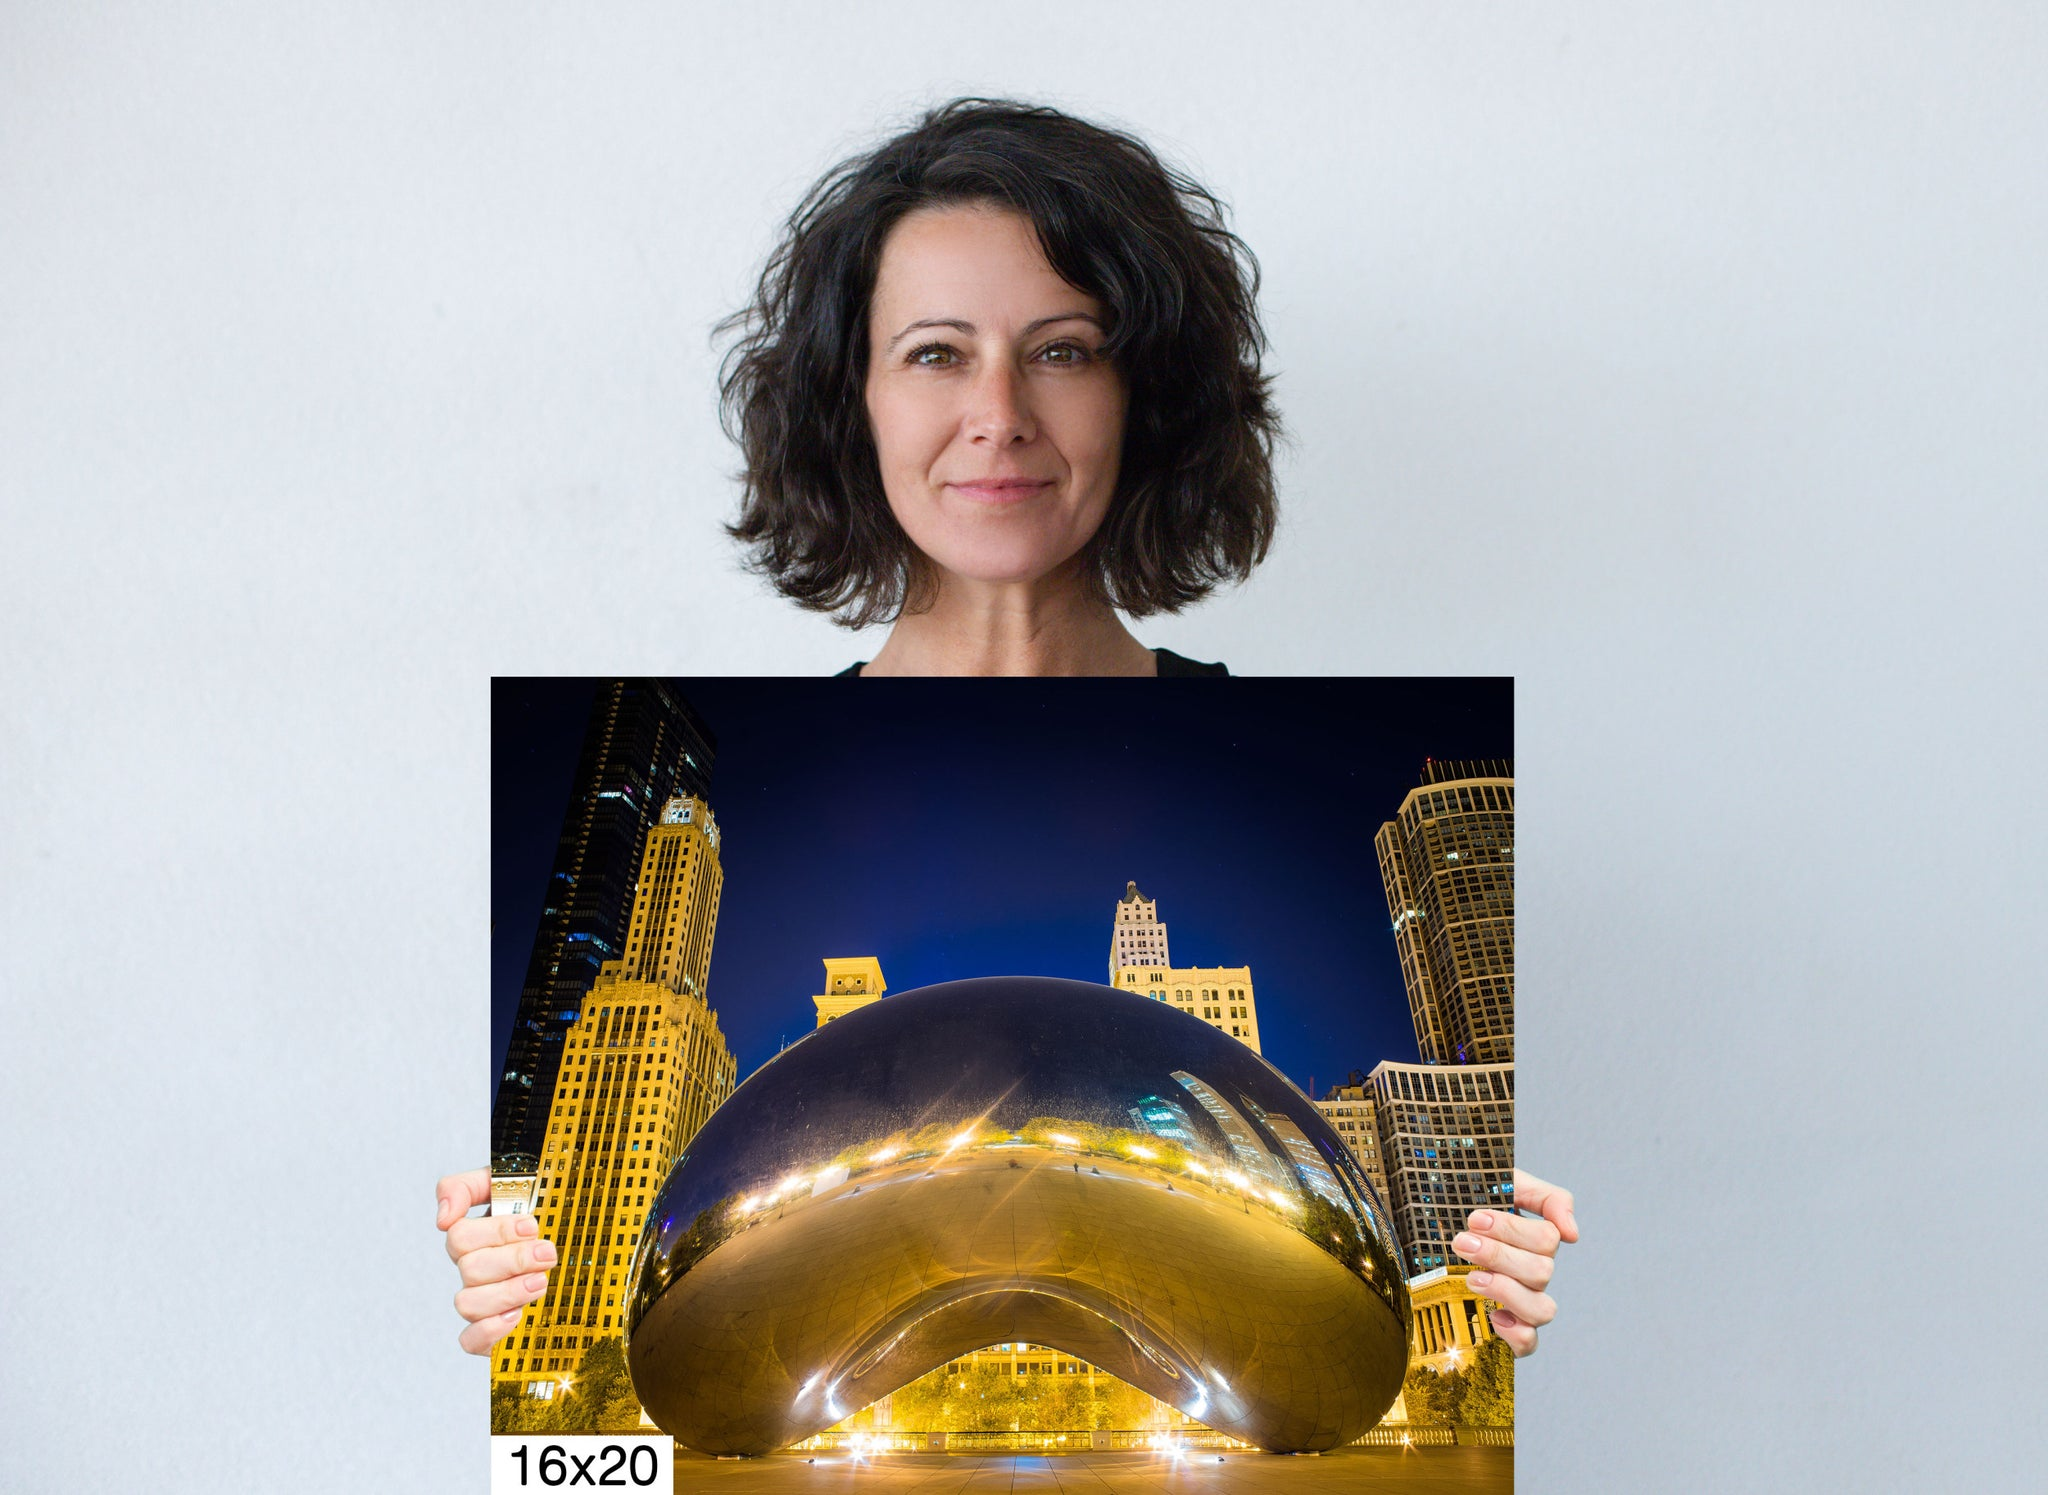 The Bean Downtown Chicago Illinois Millennium Park Canvas Metal Print Wall Art Picture Home Decor Bedroom Livingroom Poster Landmark Blue